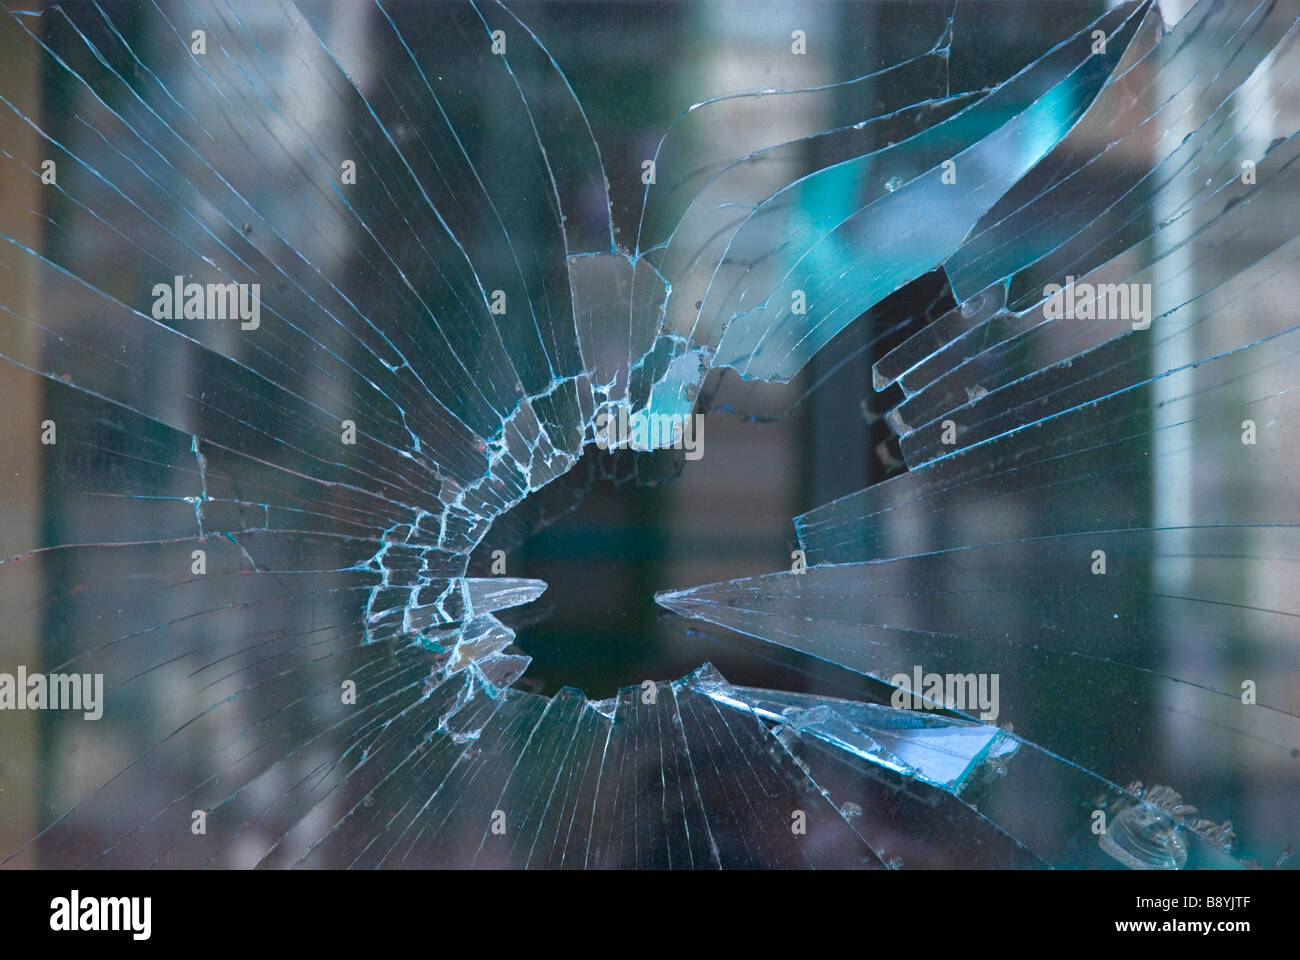 Broken window in Central Europe - Stock Image